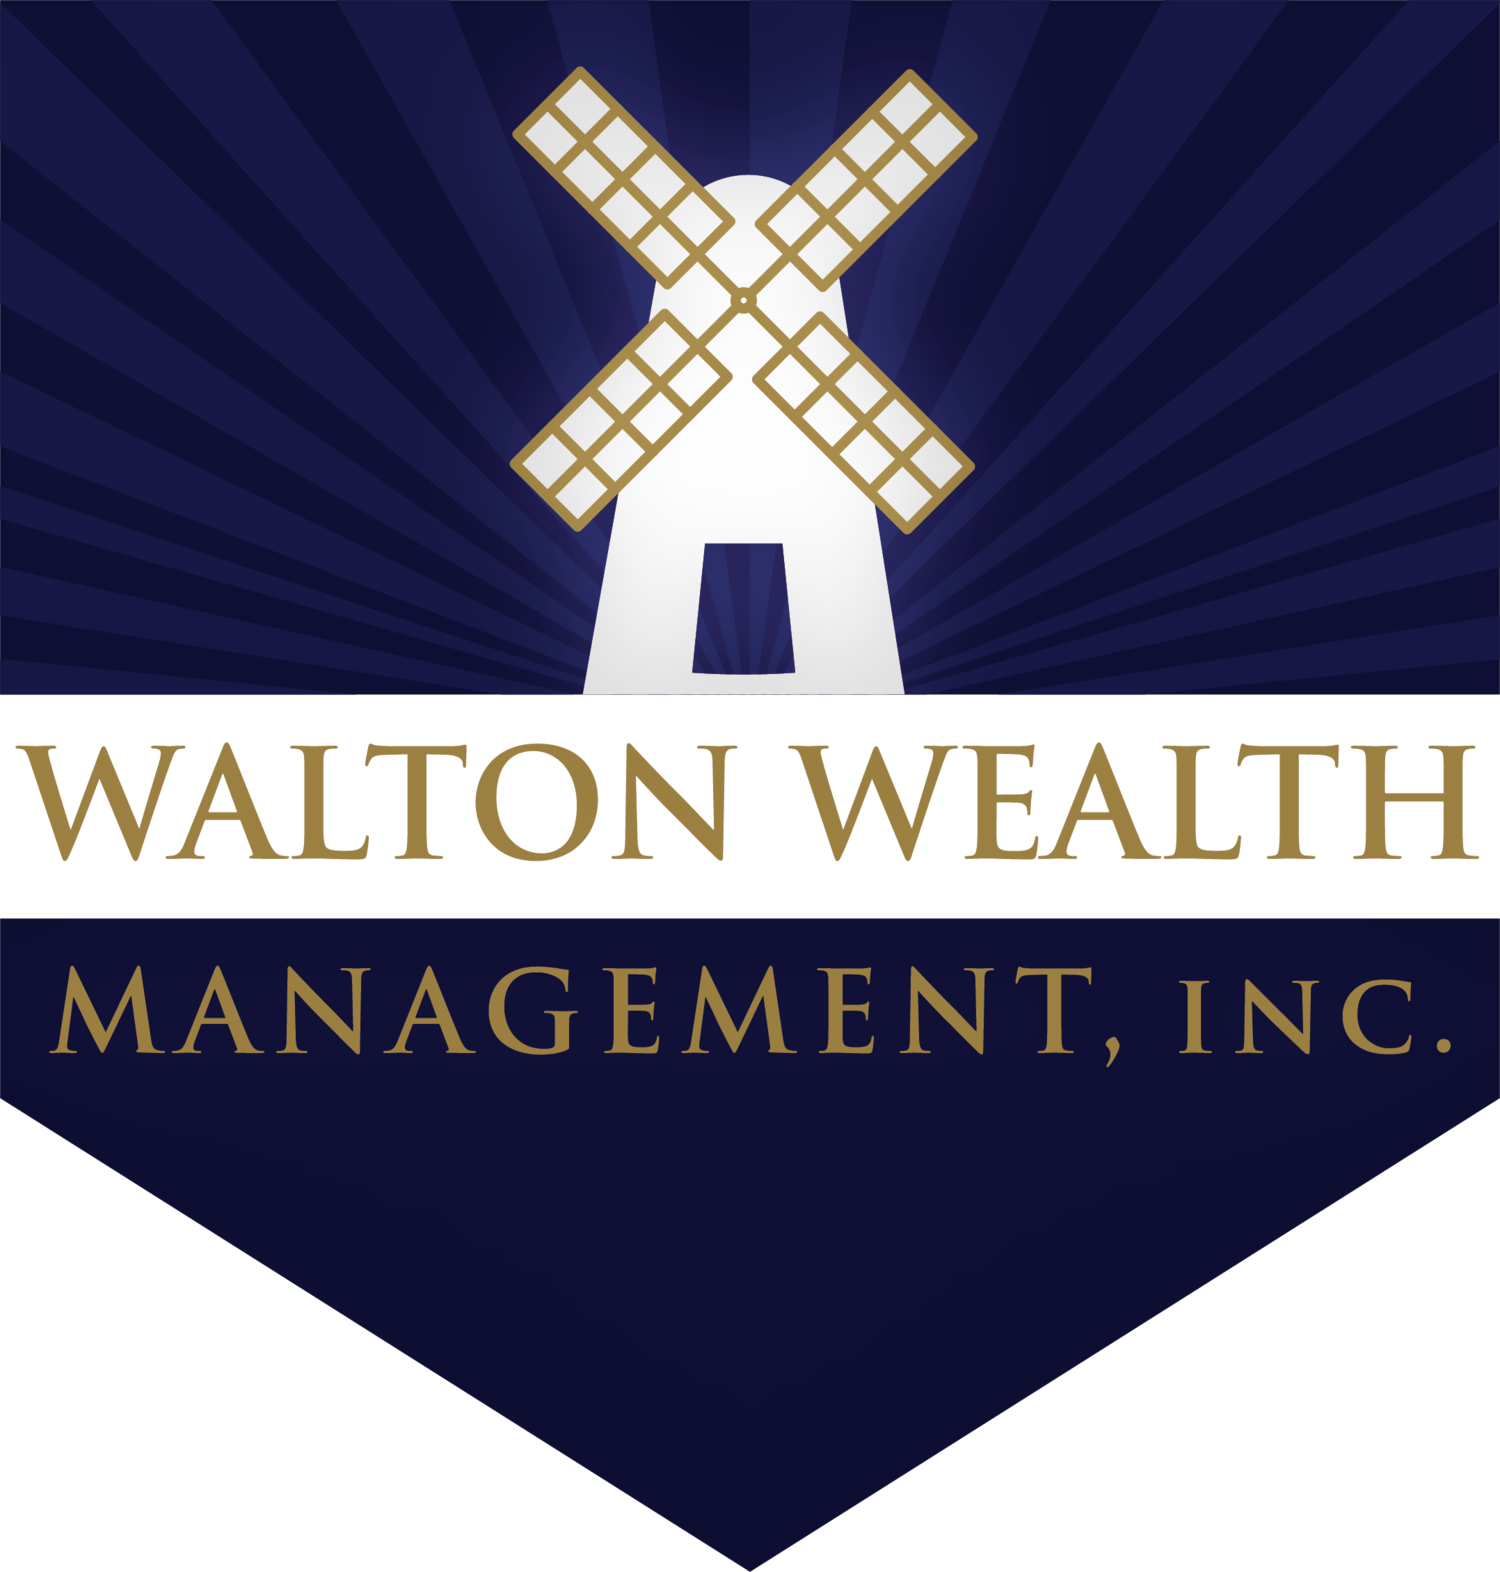 Walton Wealth Management Inc.